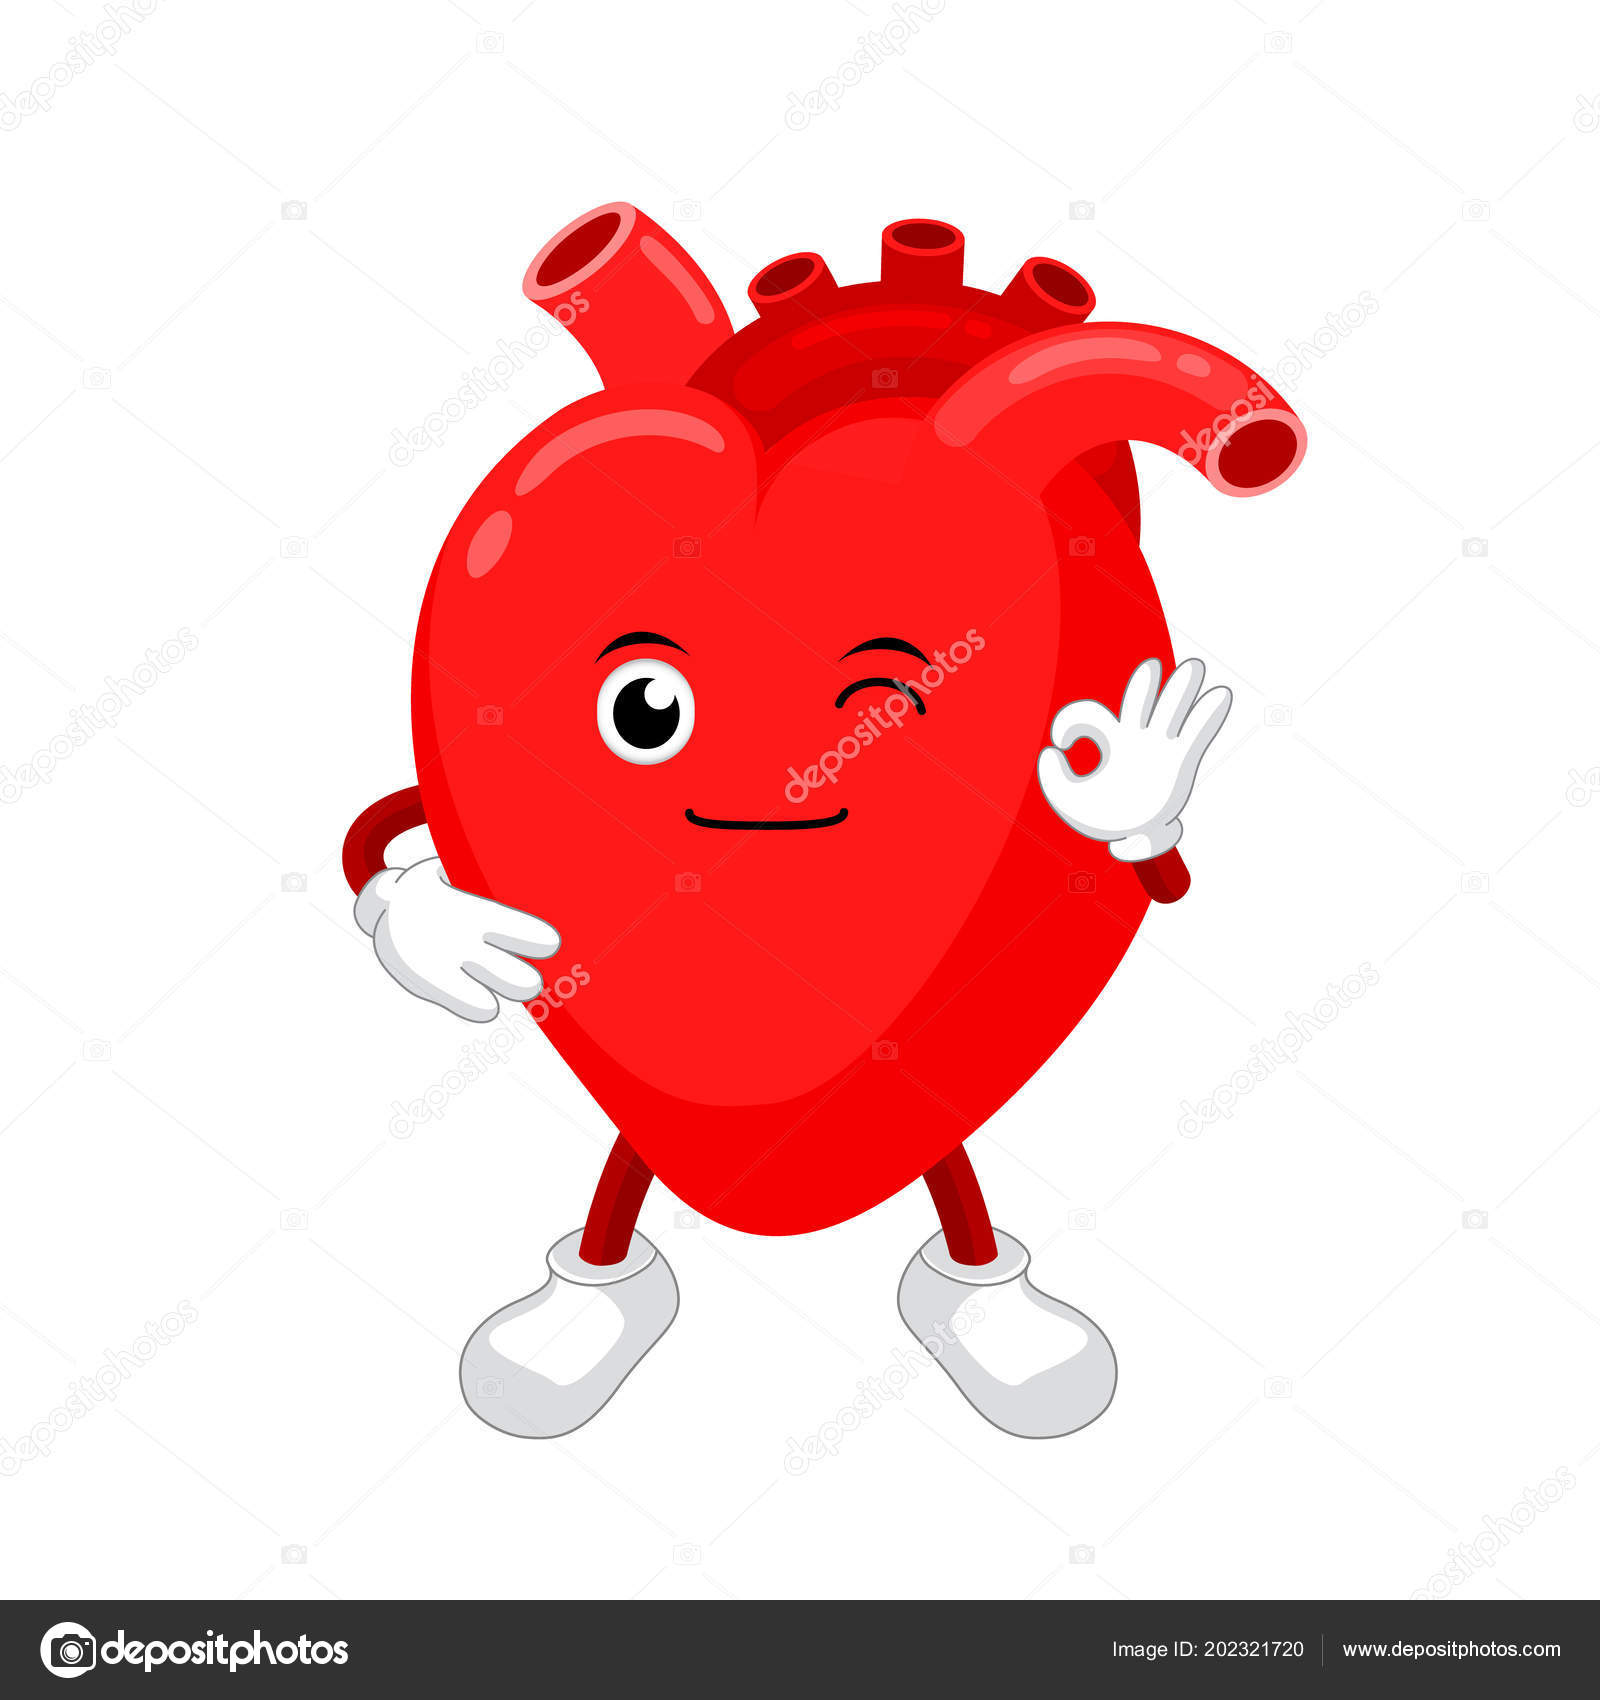 Cute funny smiling red heart character human internal organ mascot cute funny smiling red heart character human internal organ mascot vetores de stock ccuart Gallery